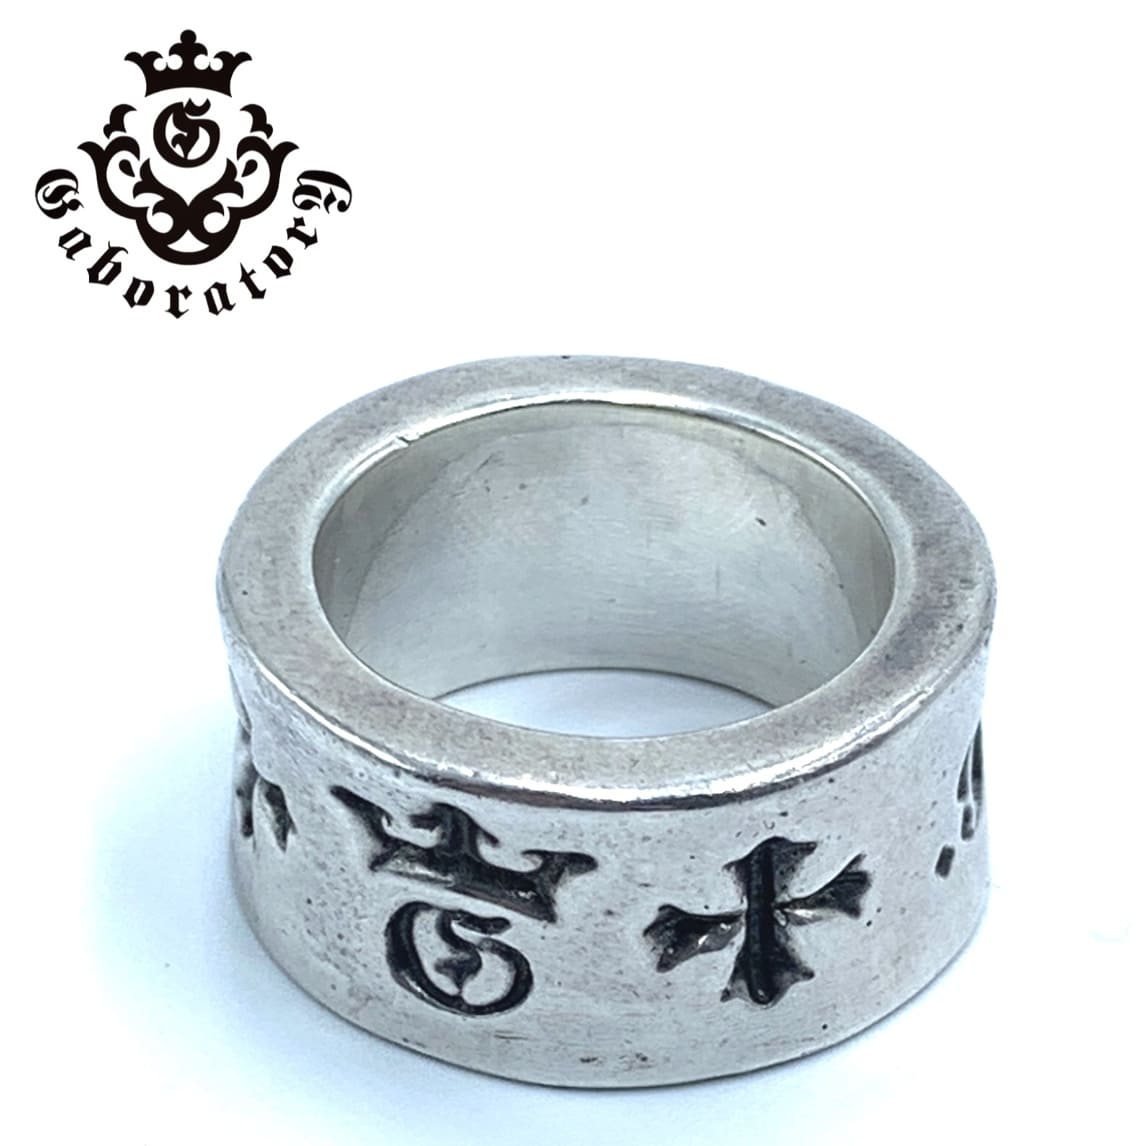 Gaboratory/ガボラトリー リングWide G&Crown Gothic Cigar Band Ring